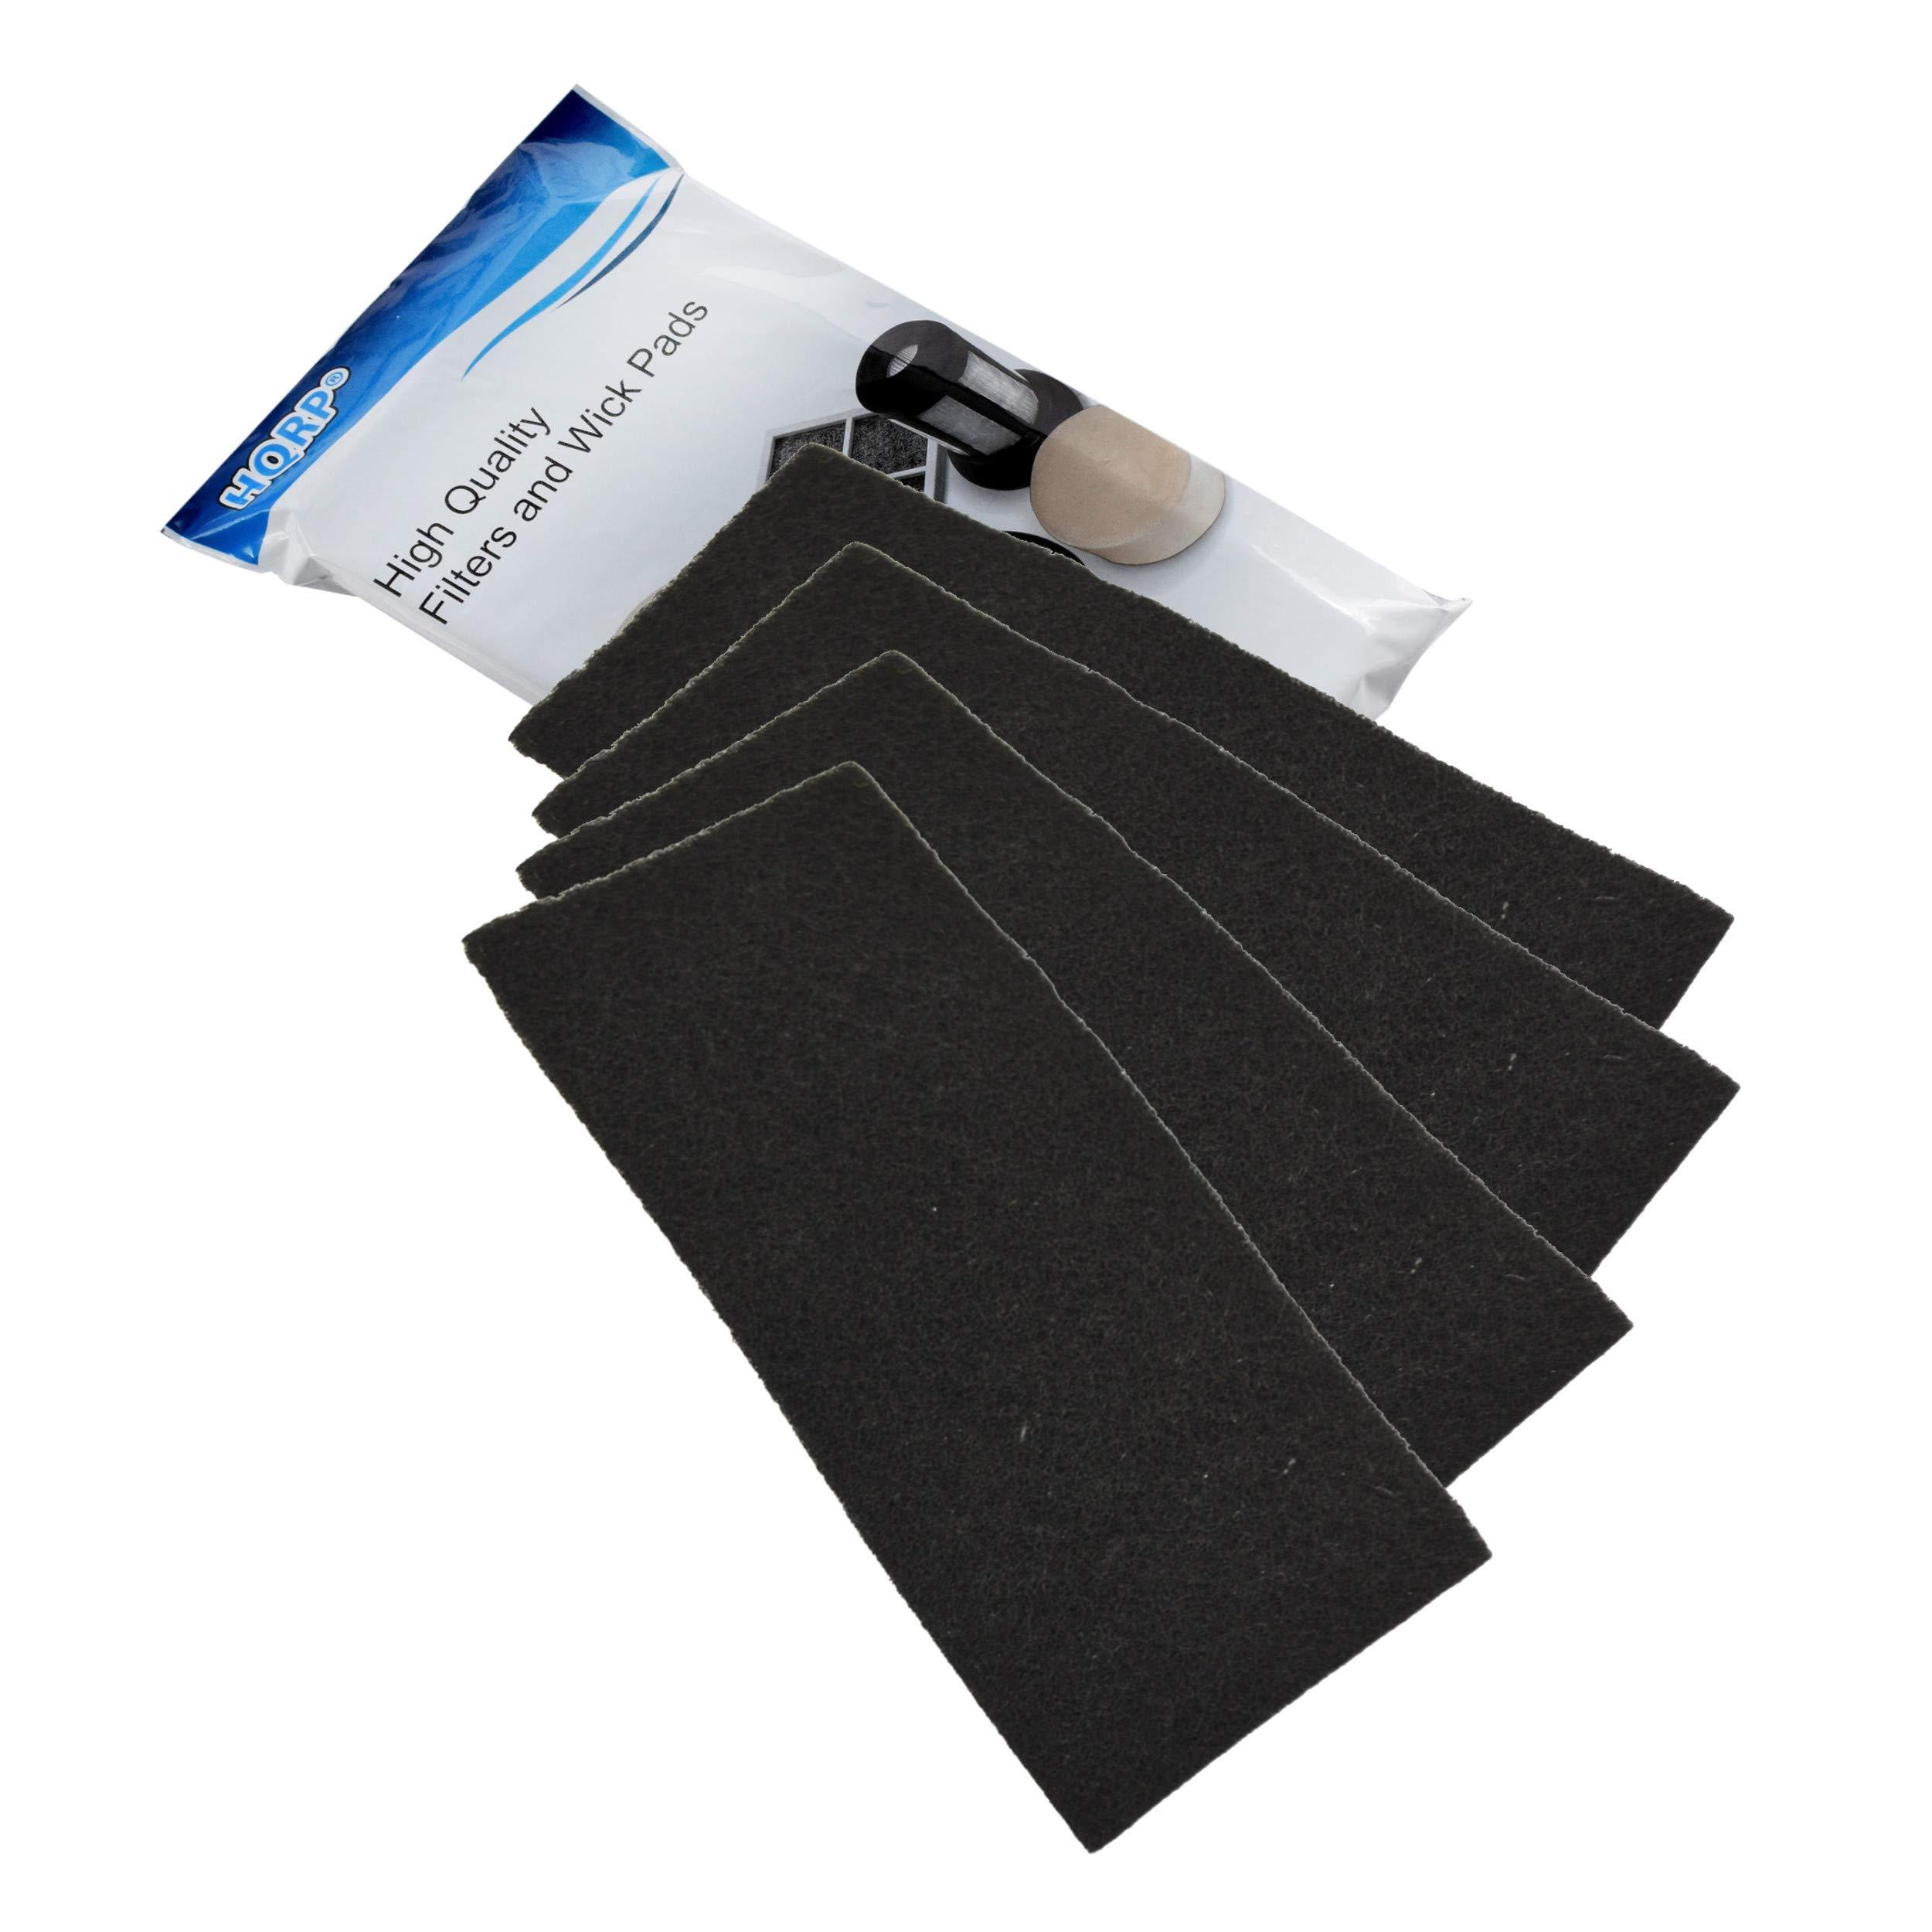 8x HQRP Carbon Filters for Holmes AER1 Series Air Purifier Filters BHOR31-1